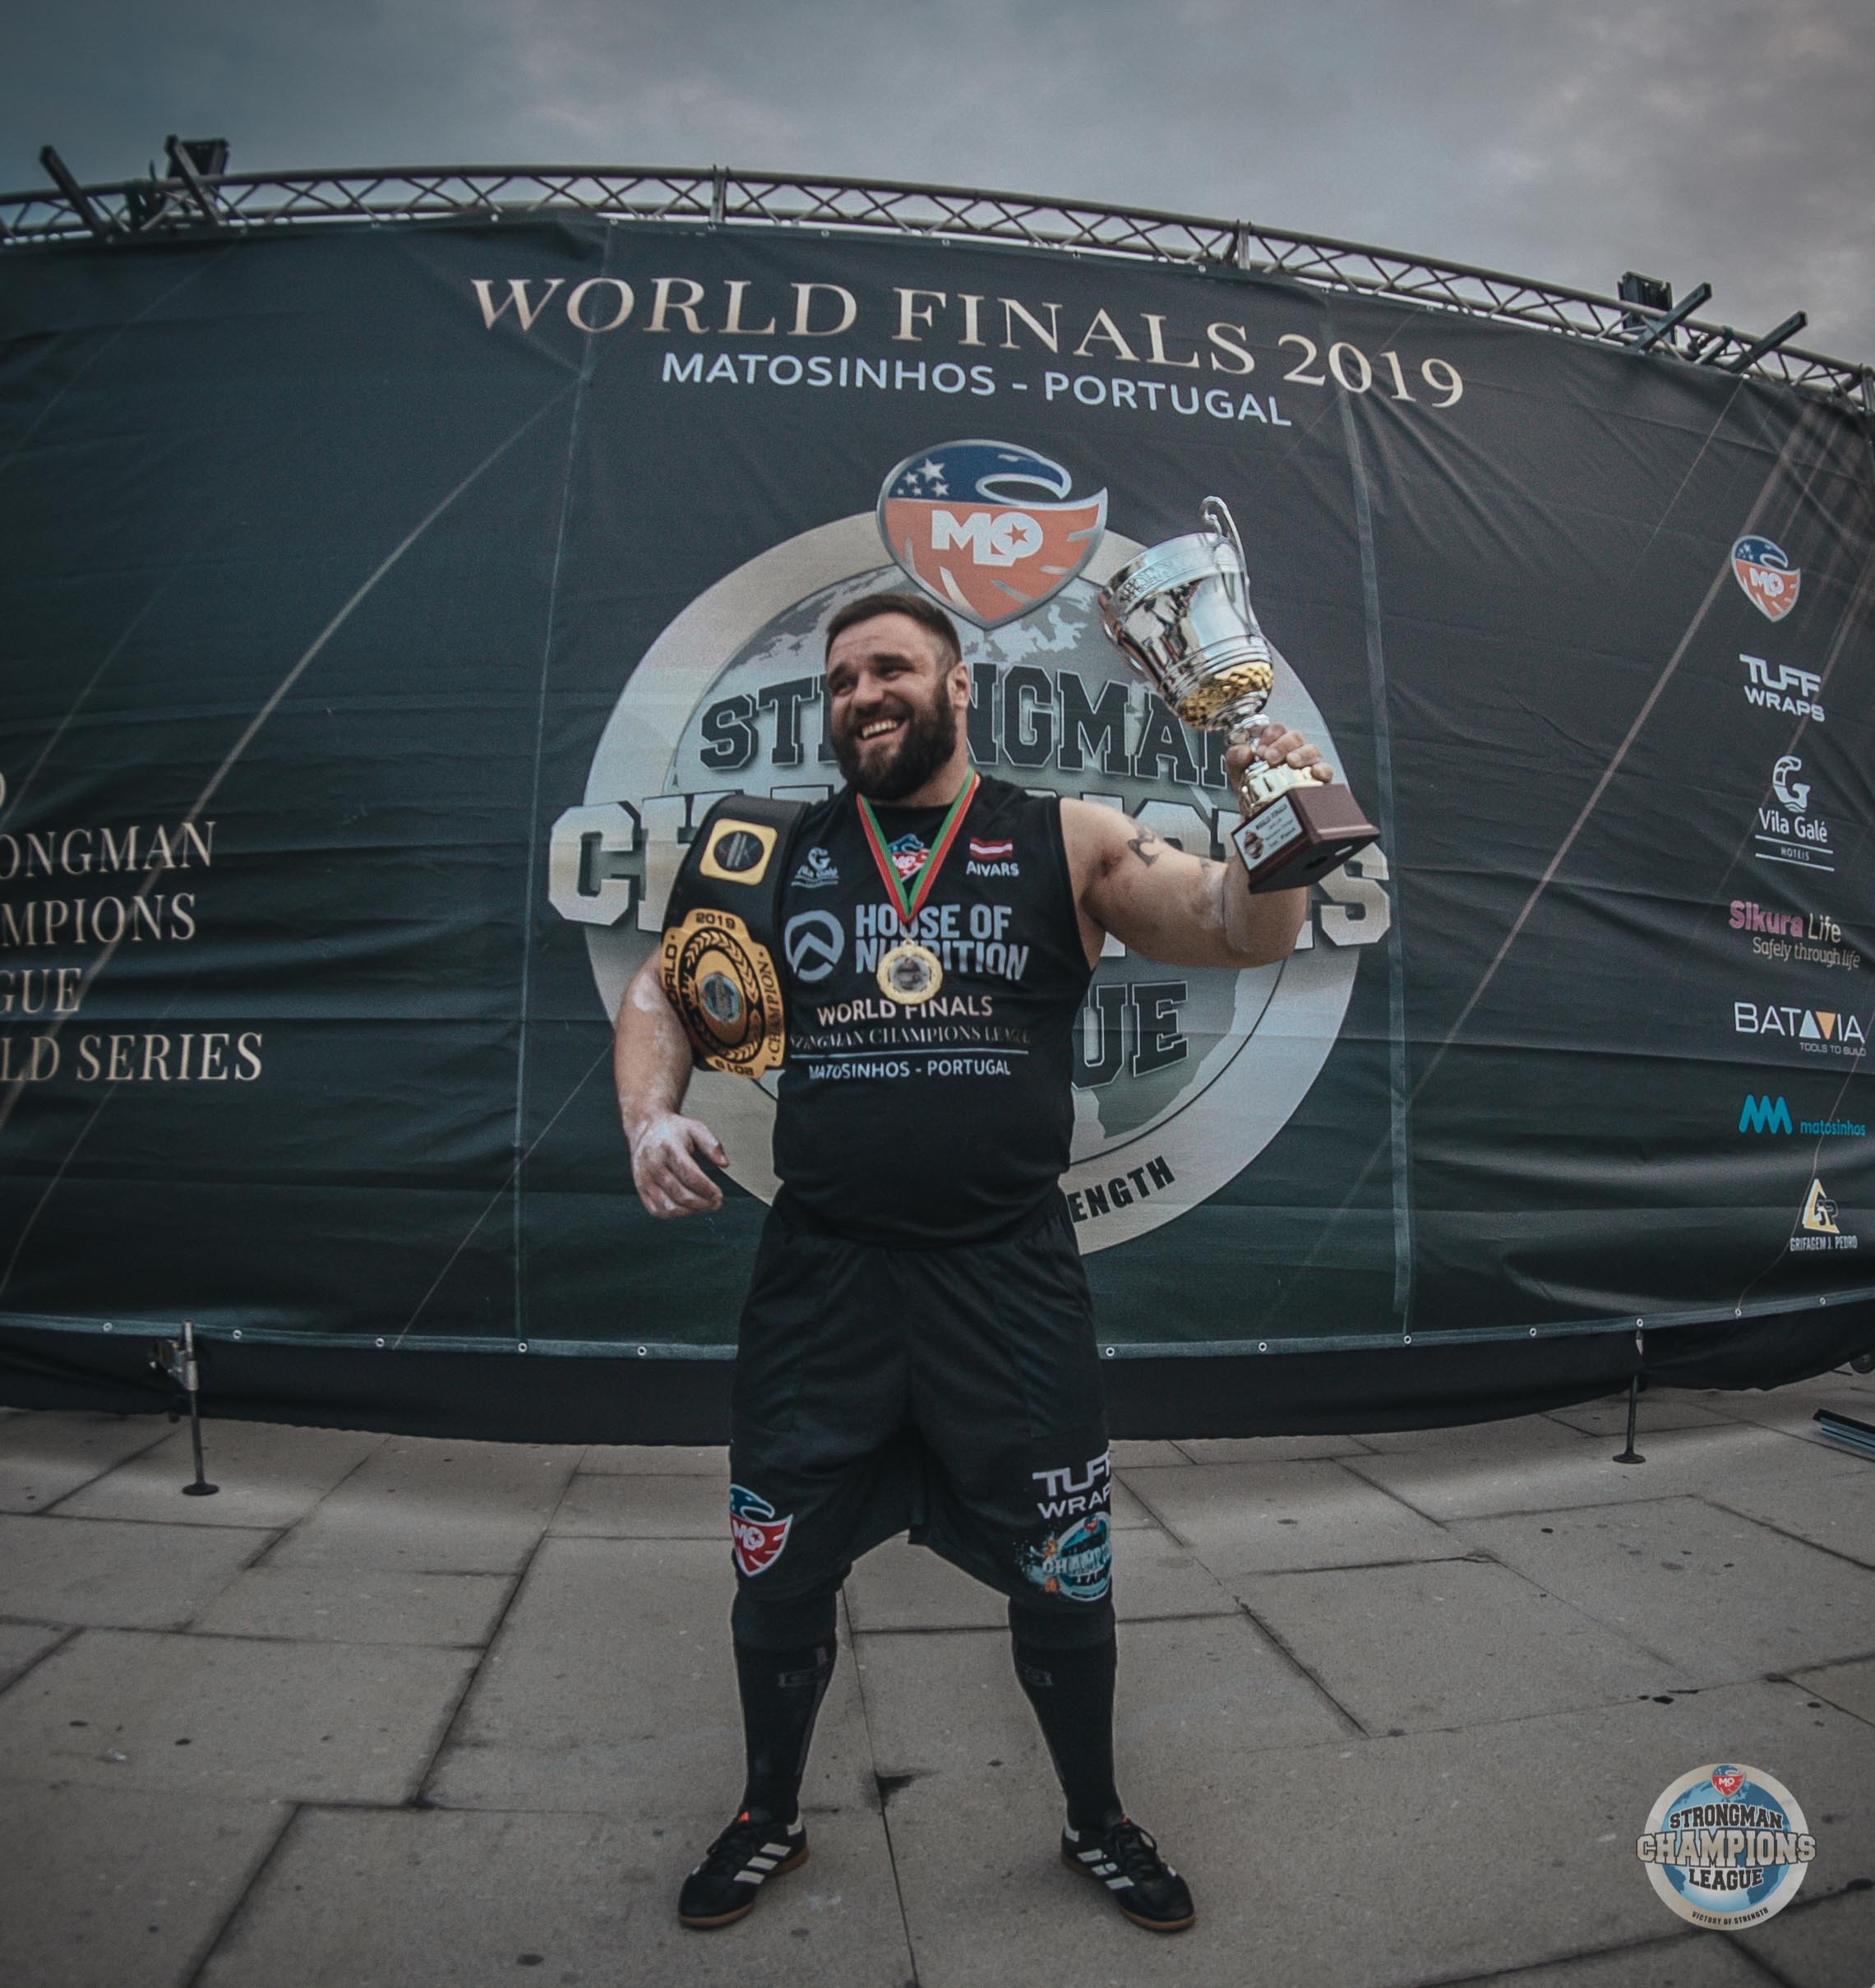 Victorious Aivars Smaukstelis is crowned as the new overall champion in MLO SCL World Finals 2019